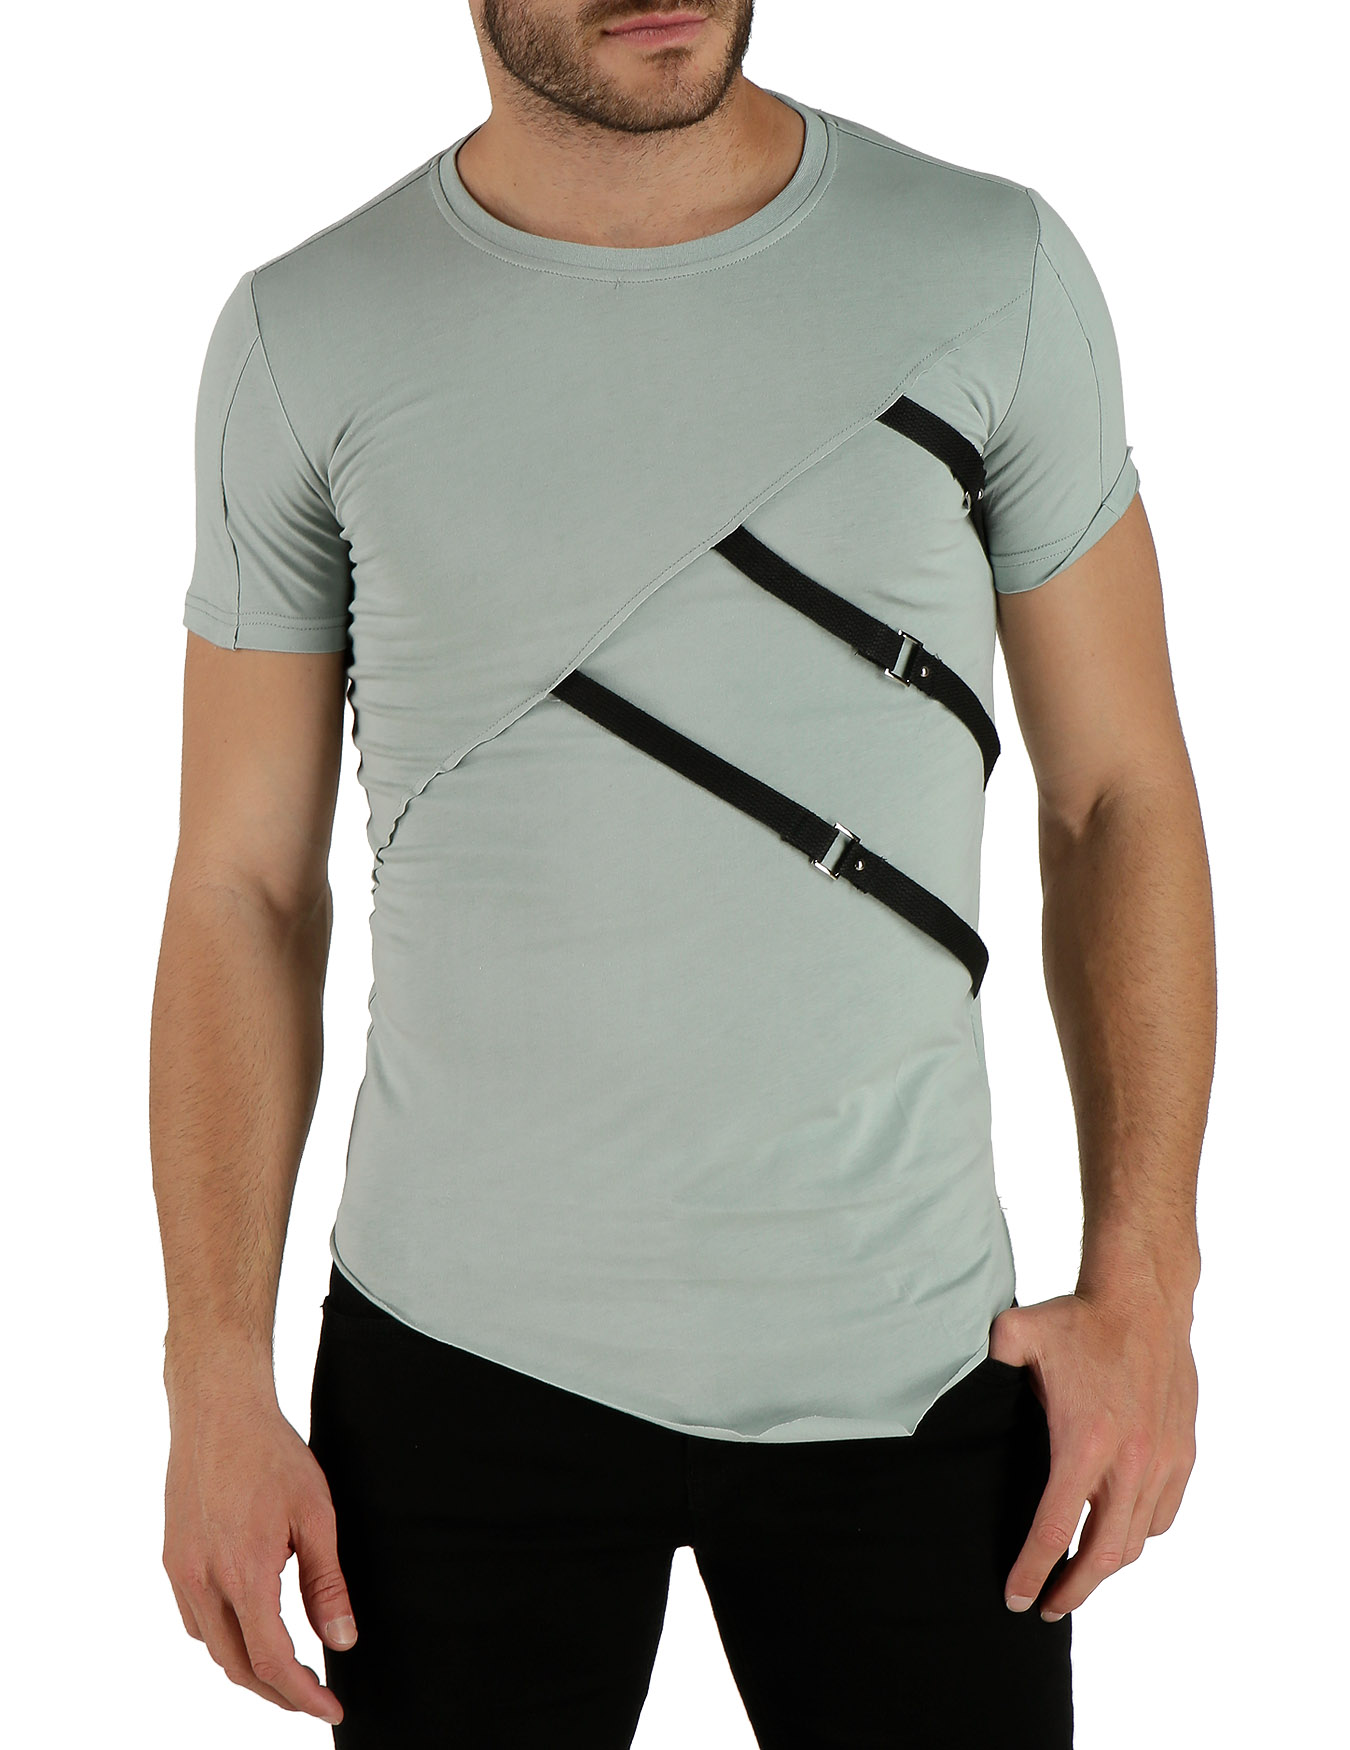 Ανδρικό T-Shirt (κωδ. BMT315) - PLAY4TWO - BMT315